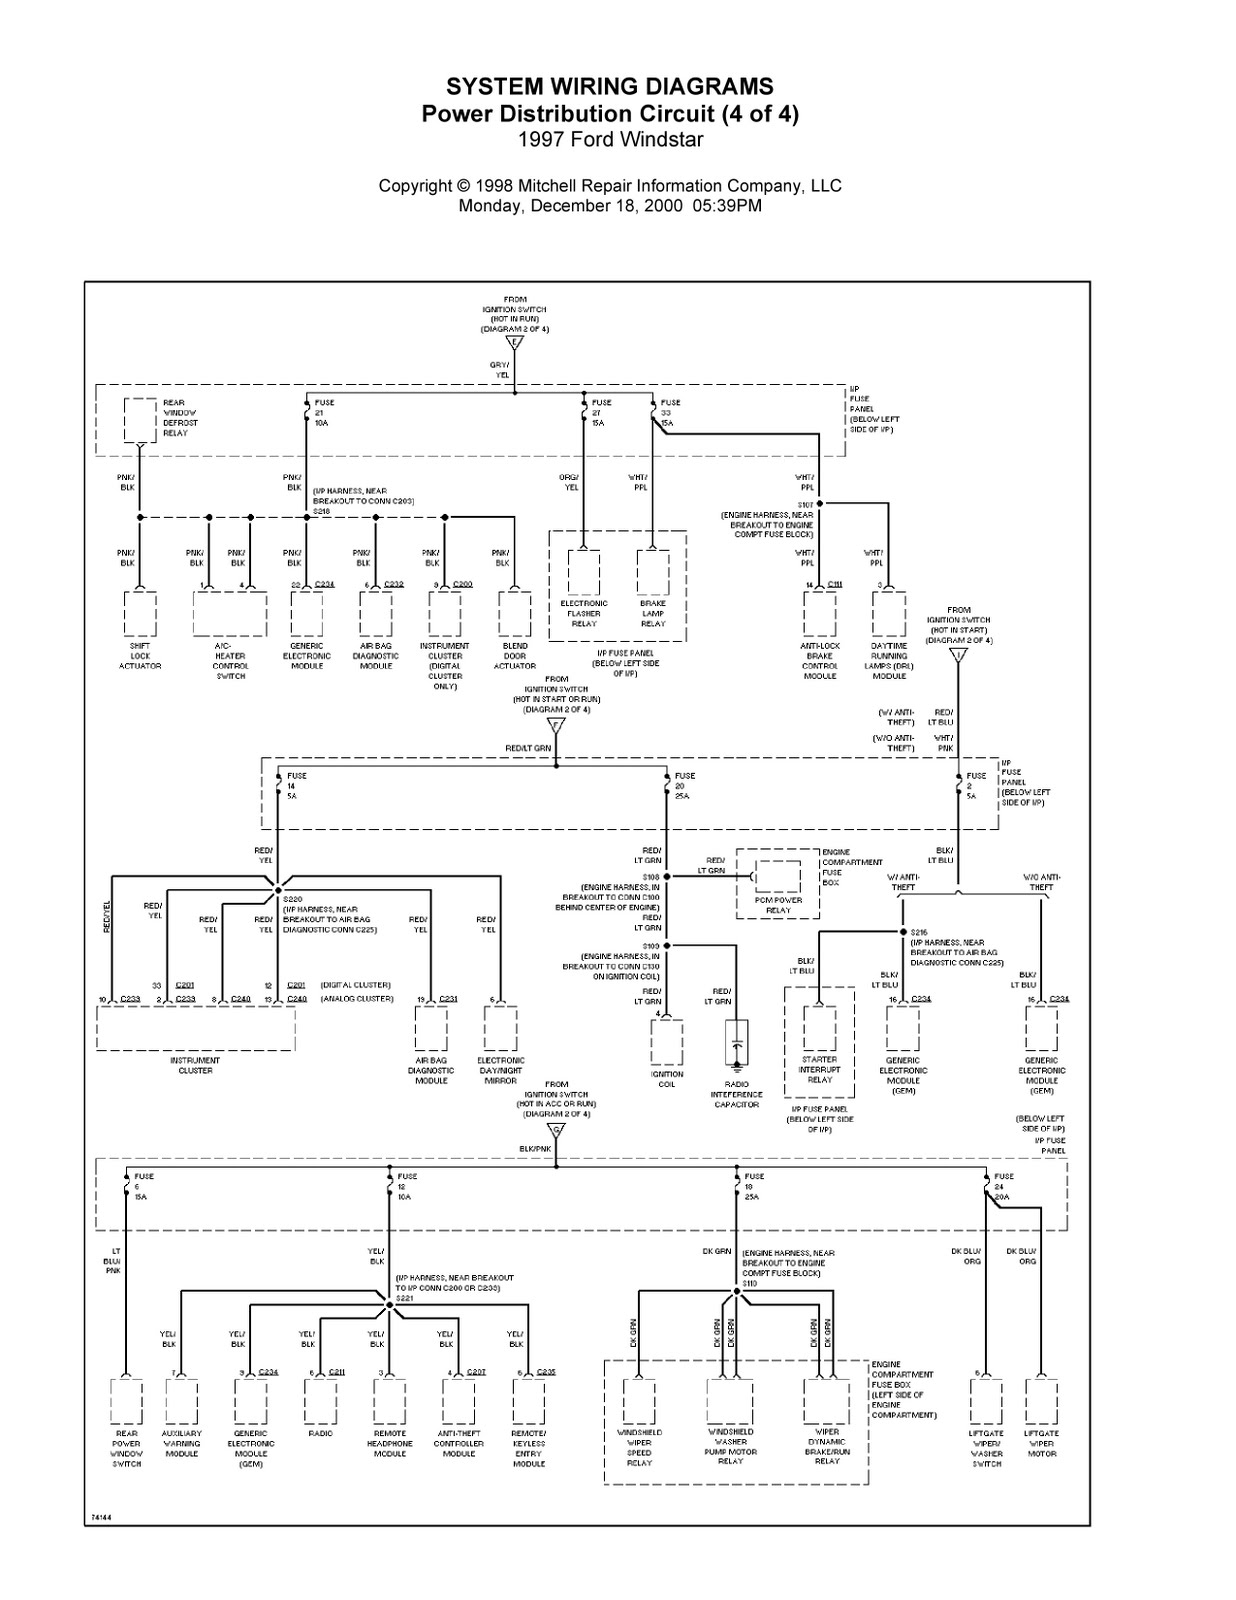 Trailer Wiring Harness For Ford Windstar : Ford windstar complete system wiring diagrams